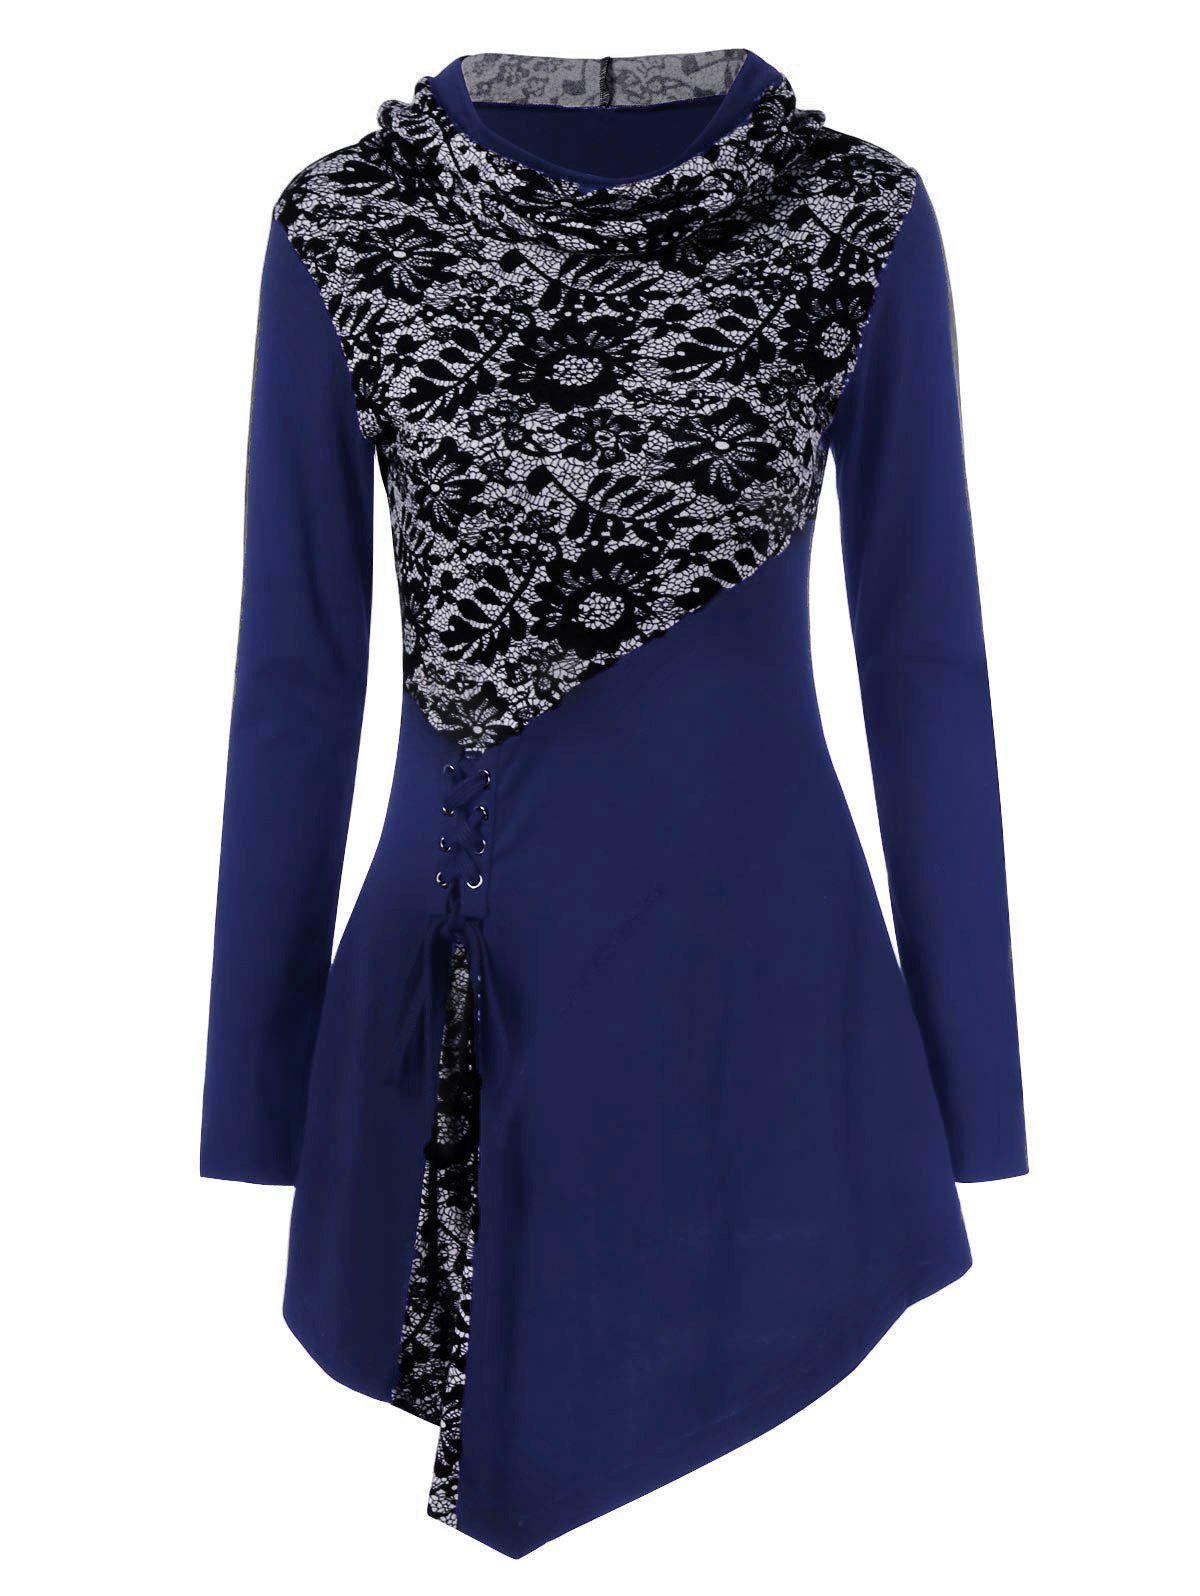 Lace-Up Asymmetrical Long Sleeve Hooded T-ShirtWOMEN<br><br>Size: M; Color: BLUE; Material: Polyester,Spandex; Sleeve Length: Full; Collar: Hooded; Style: Fashion; Embellishment: Lace; Pattern Type: Patchwork; Season: Fall,Spring; Weight: 0.3700kg; Package Contents: 1 x T-Shirt;